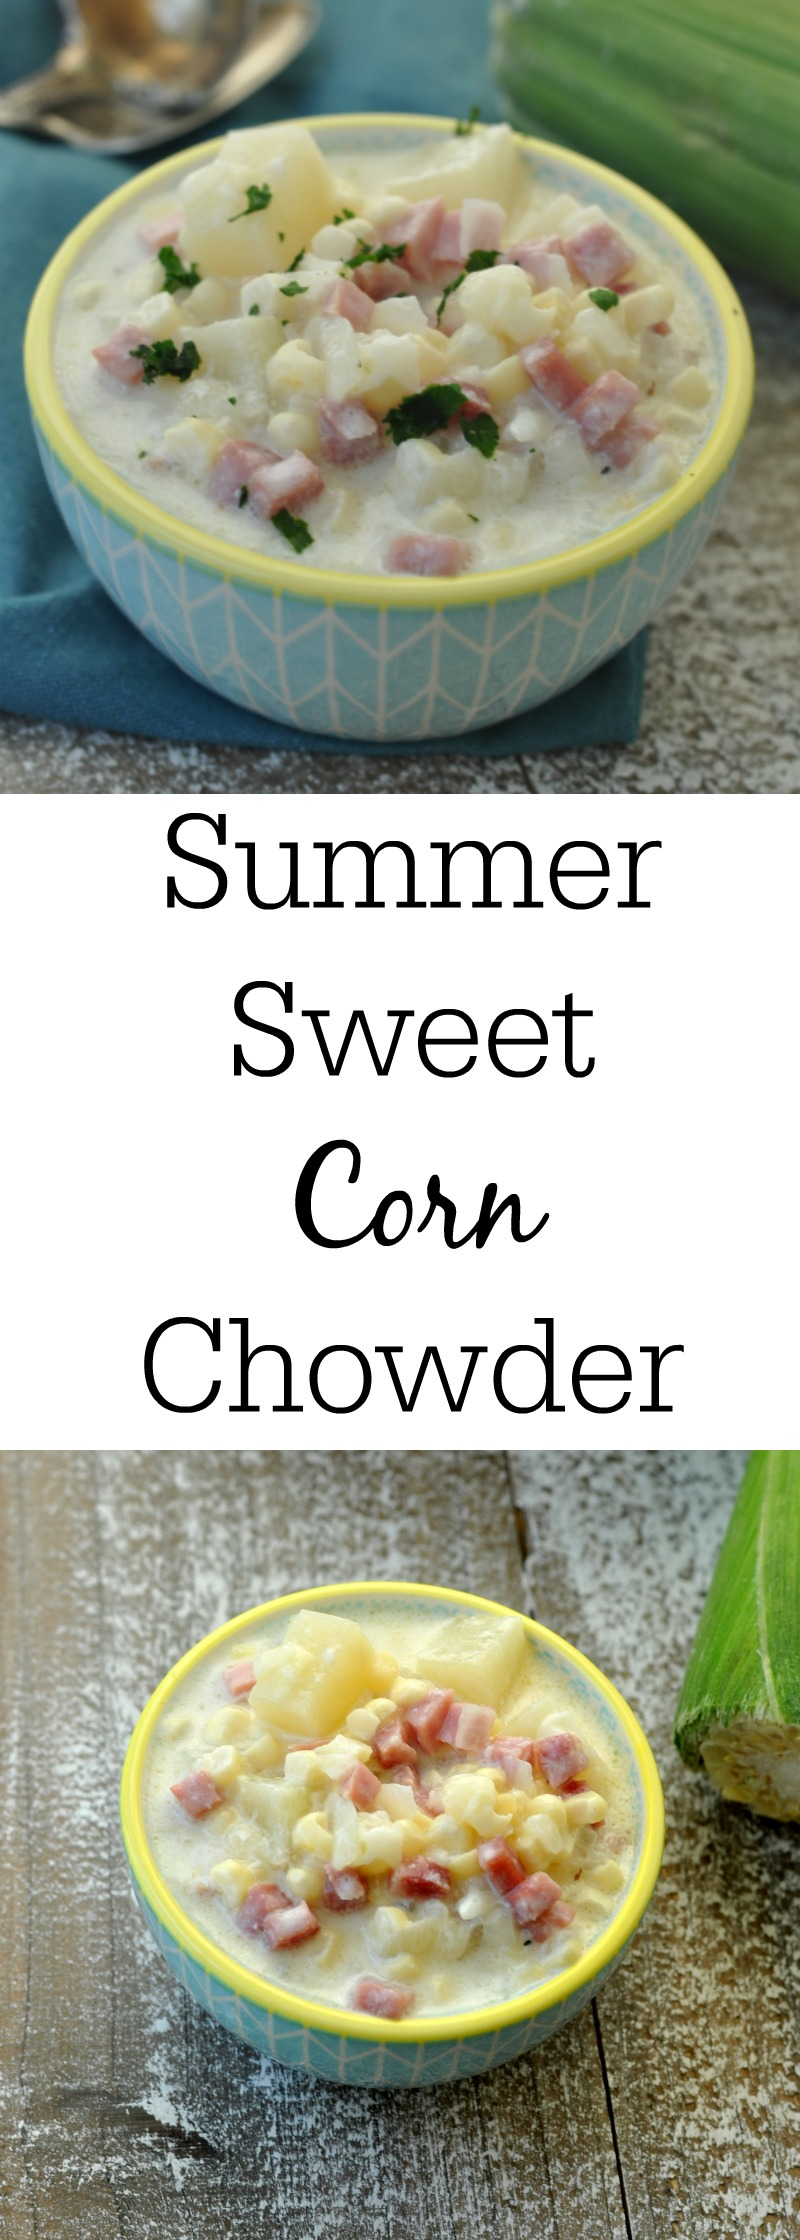 Sweet Corn Chowder